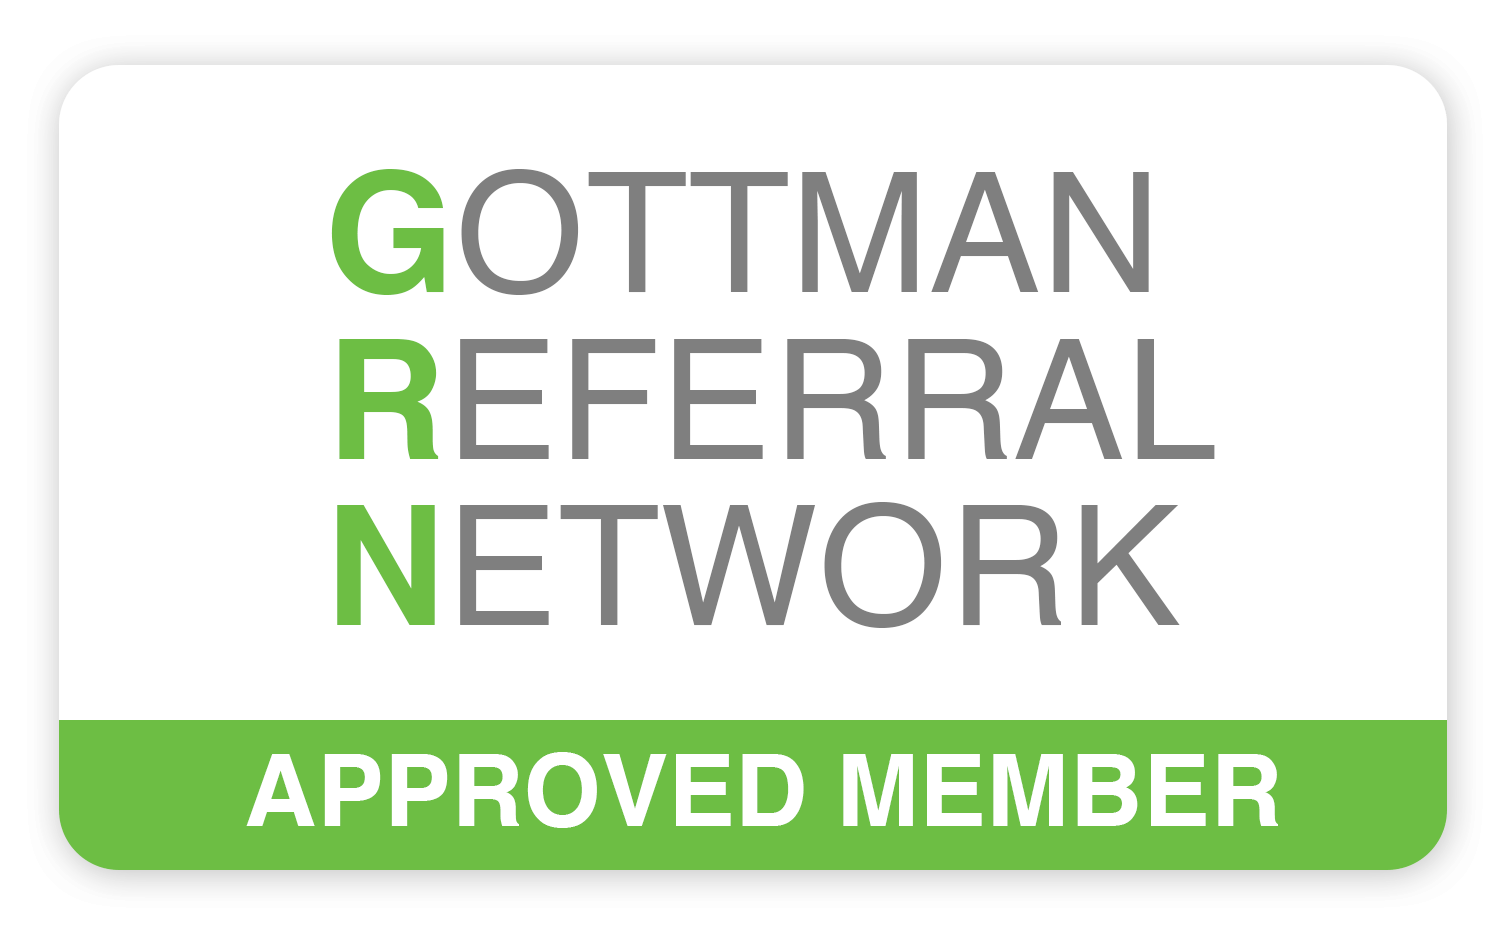 Timothy Donovan's profile on the Gottman Referral Network